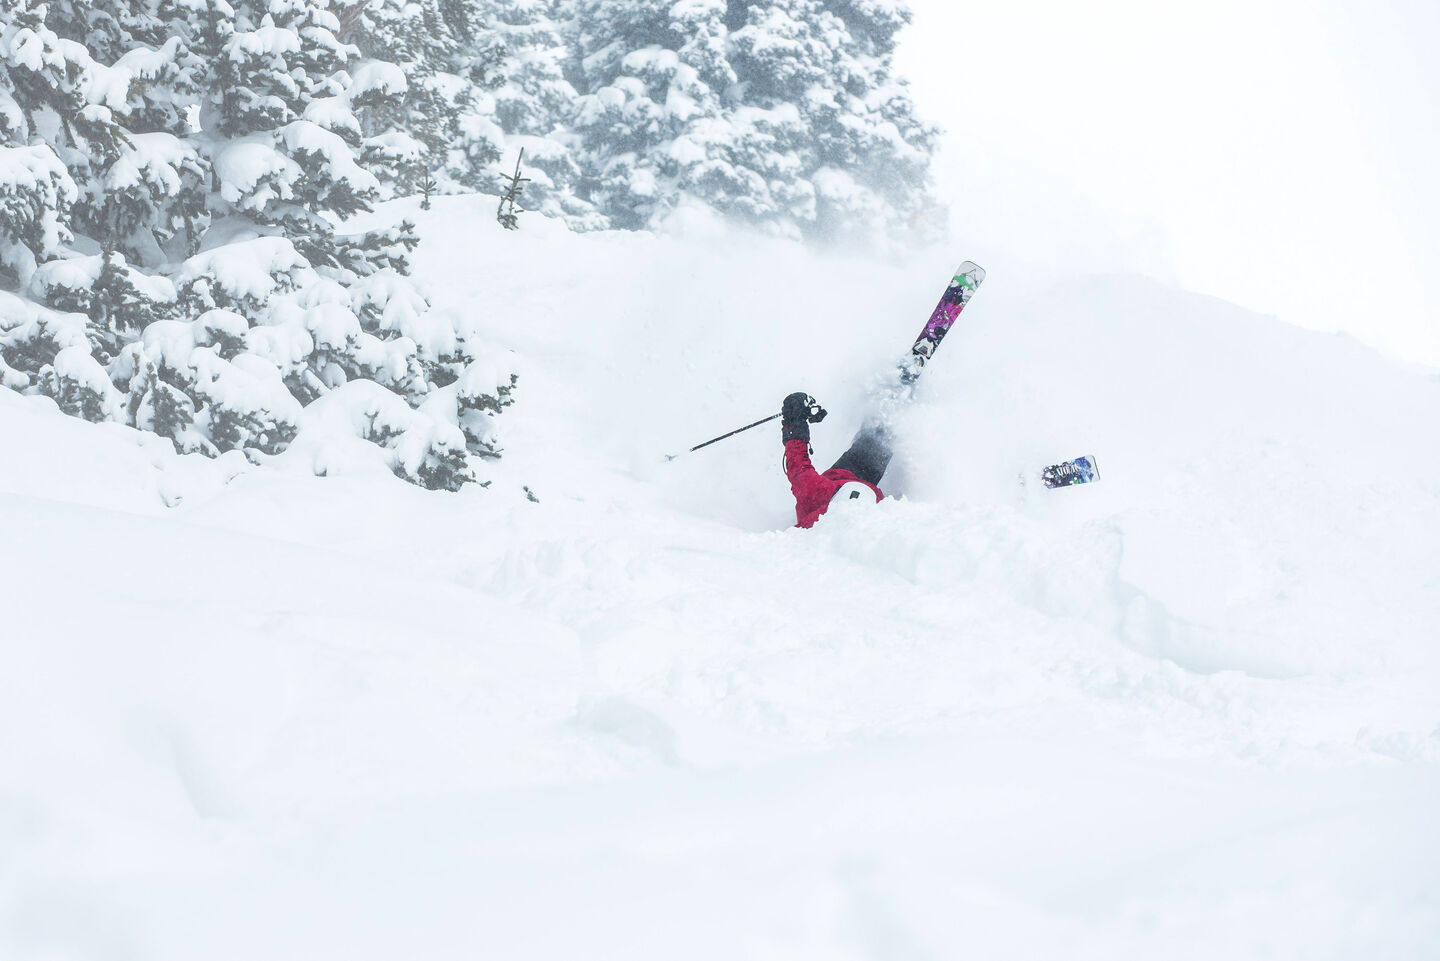 Skier wiping out in deep powder